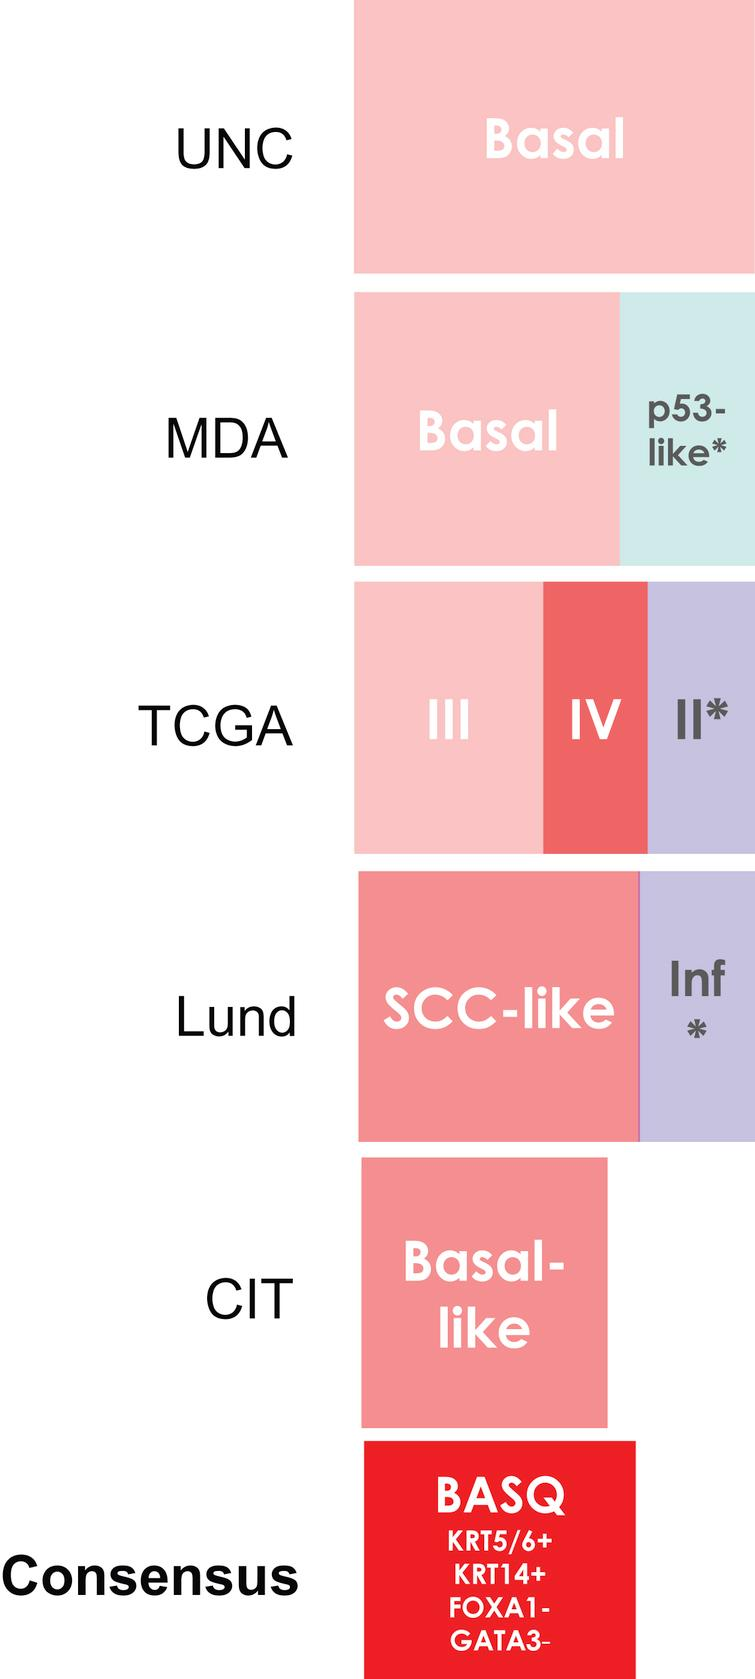 """Comparison of the bladder cancer classifications as they relate to the """"BASQ"""" (Basal-Squamous-like) consensus group. In red background, the subtypes that are enriched in this group. Tumor subclasses in other colors (p53-like, TCGA II, Infiltrated) comprise samples that would be included in the BASQ group and others that would not. Tumors in these three categories also express markers typical of urothelial differentiation to a variable extent. In red, the consensus definition of the """"BASQ"""" subtype."""